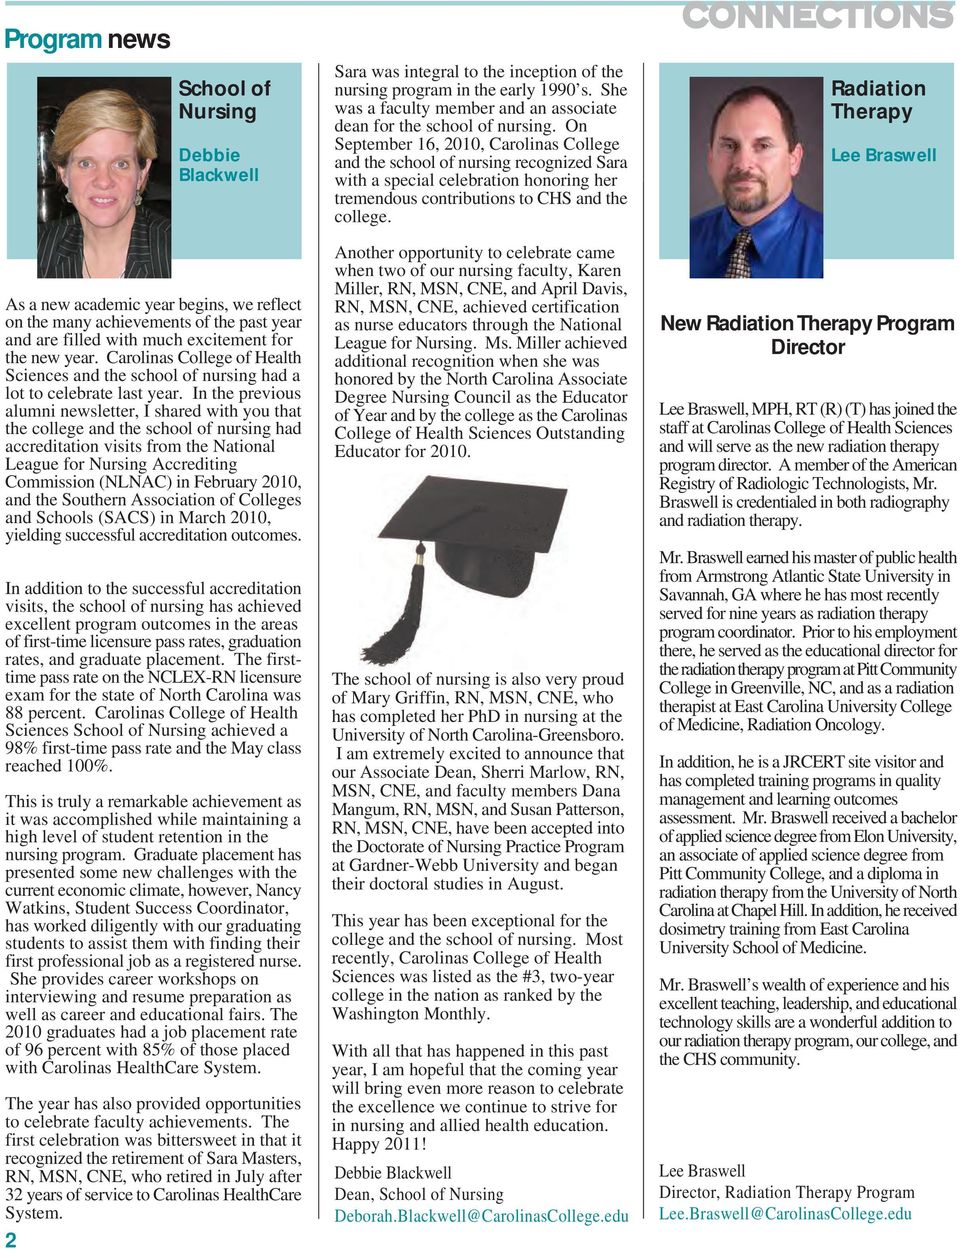 In the previous alumni newsletter, I shared with you that the college and the school of nursing had accreditation visits from the National League for Nursing Accrediting Commission (NLNAC) in